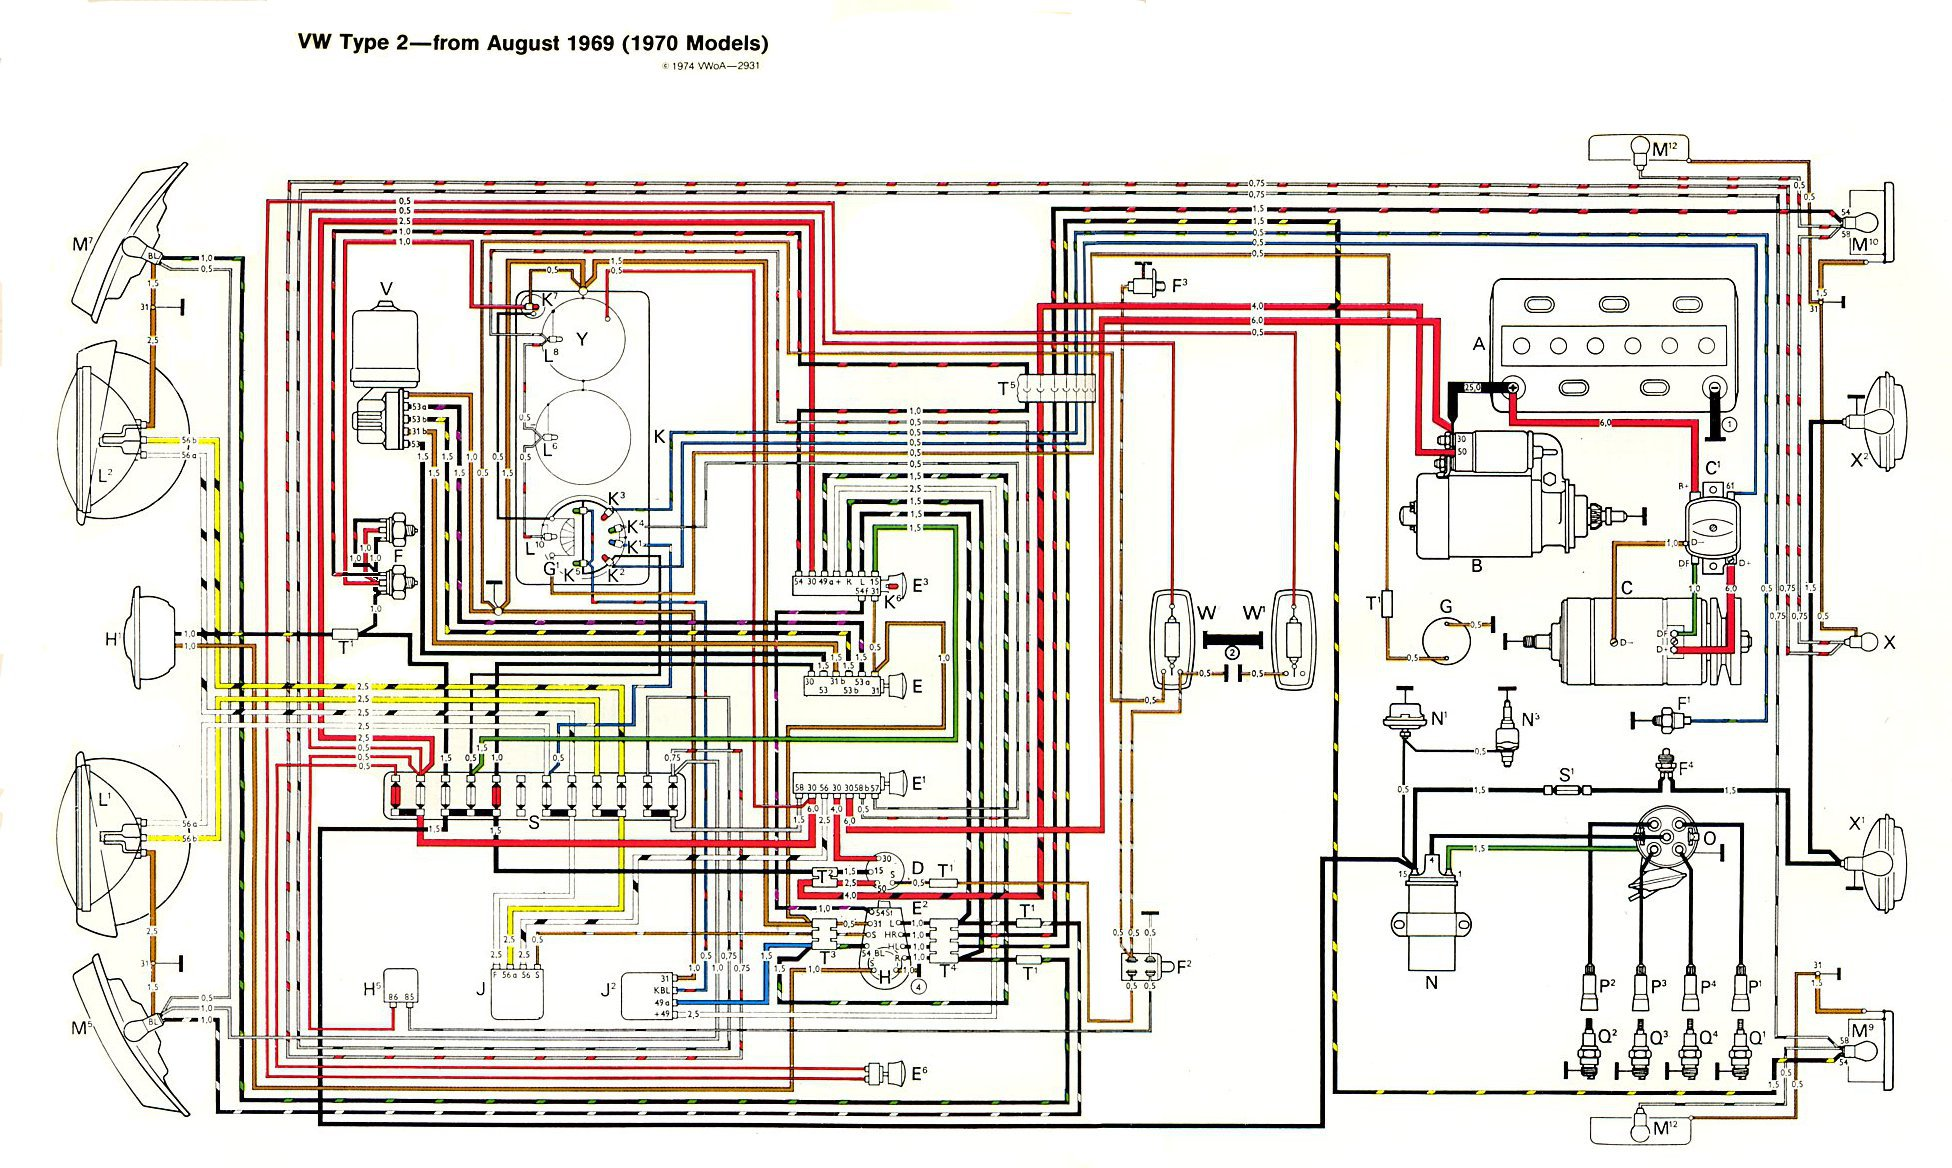 thesamba com type 2 wiring diagrams rh thesamba com Wiring Harness Wiring-Diagram 2012 Porsche GTS Wiring-Diagram Gauge Cluster